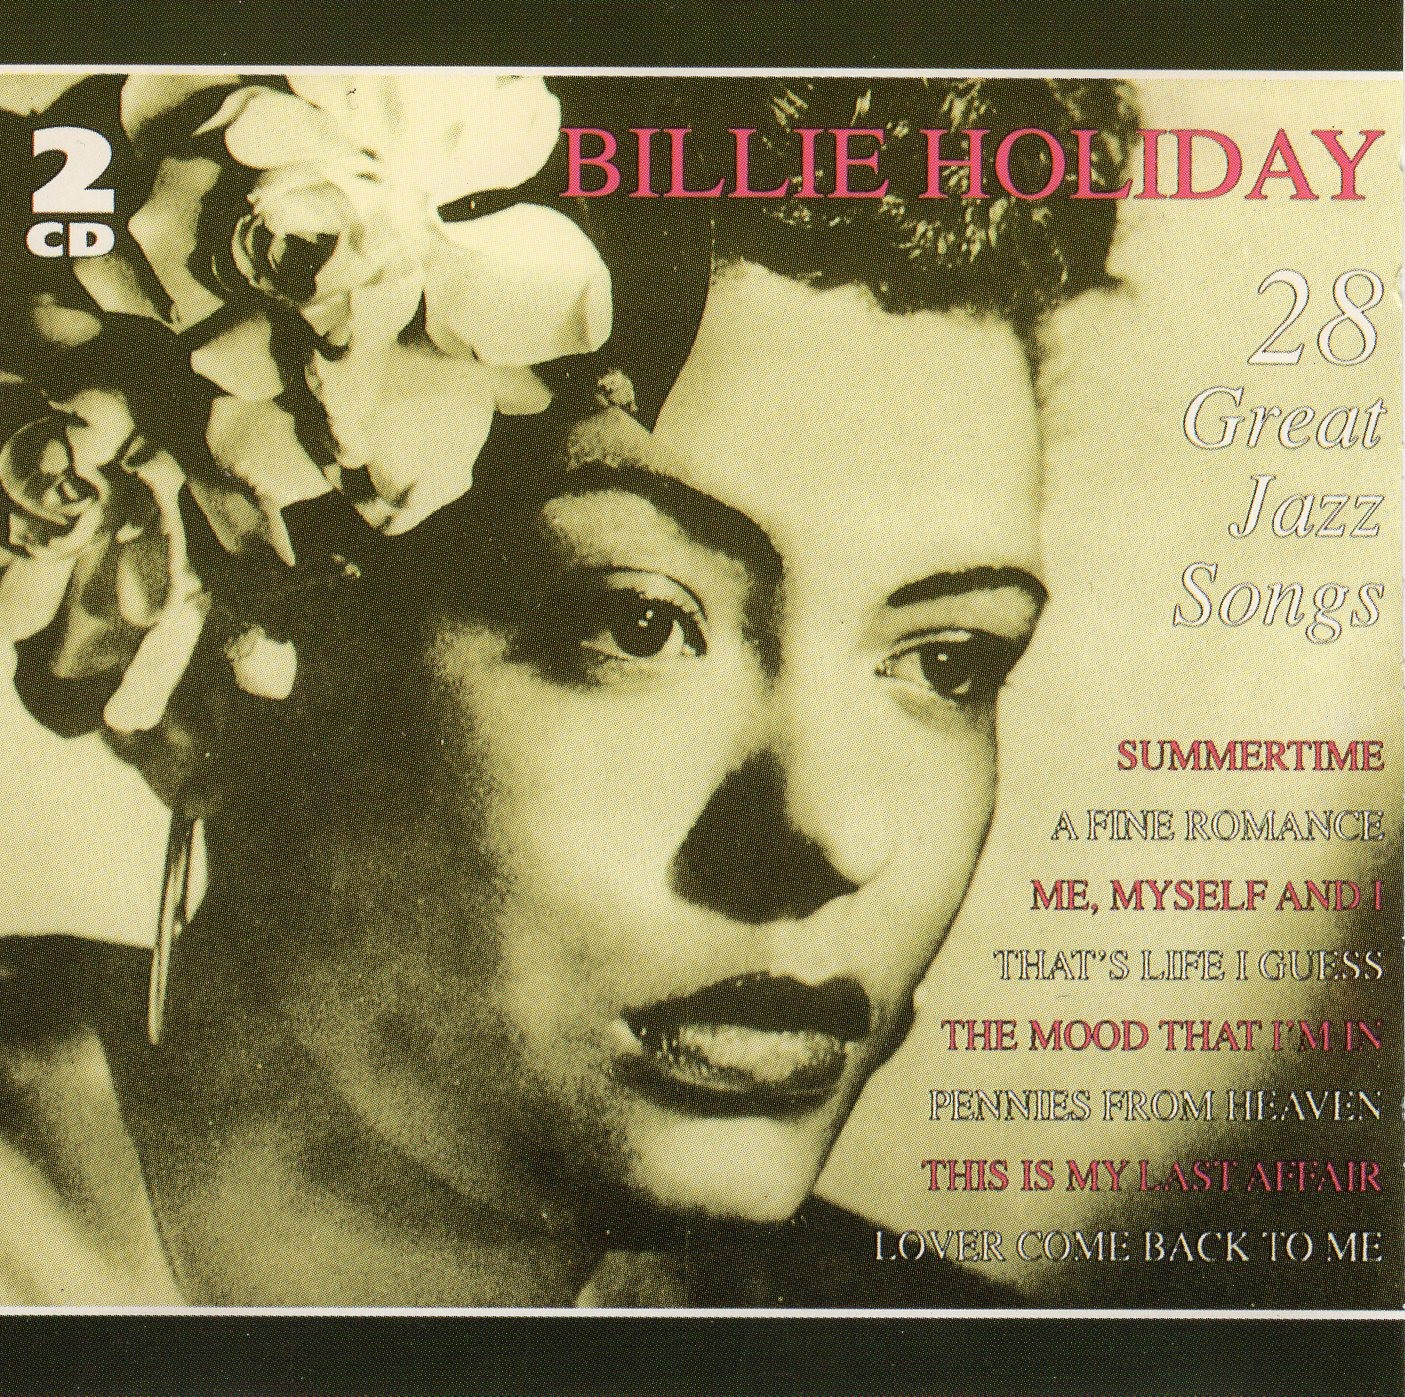 """Billy Holiday 28 Great Jazz Songs"" Billie Holiday"